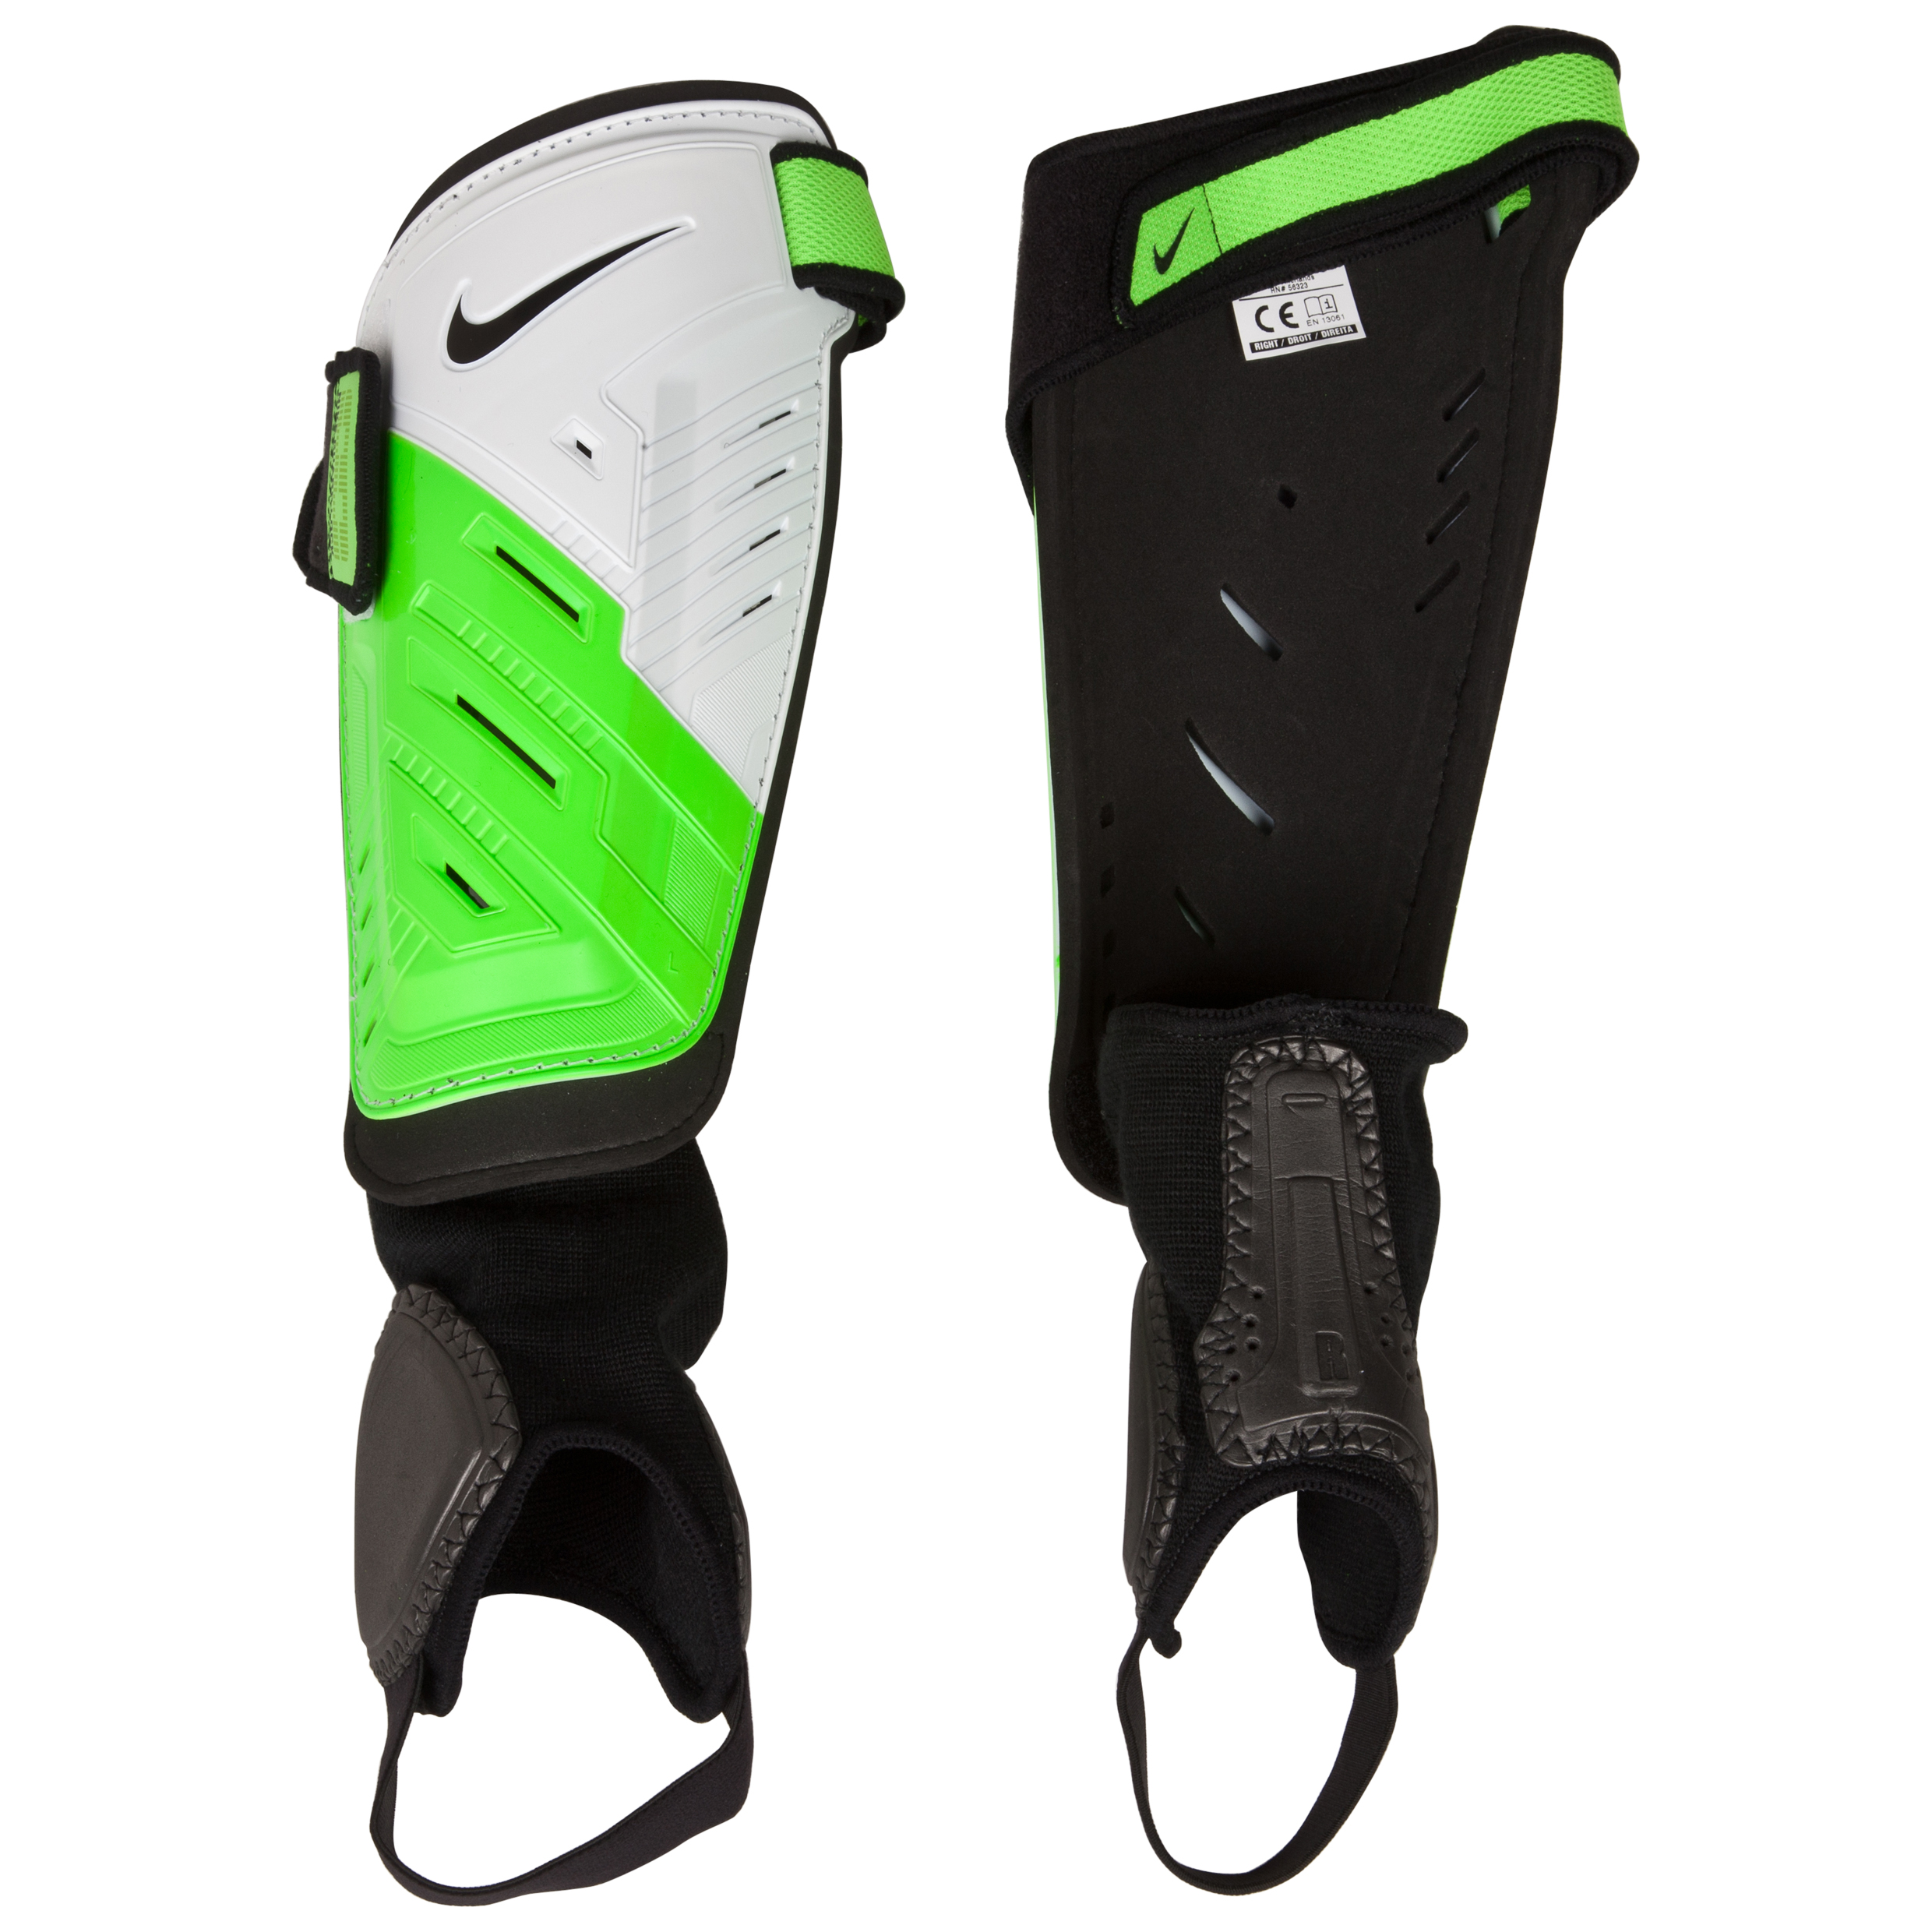 Nike Protegga Shield Shin Pads - White/Green/Black/